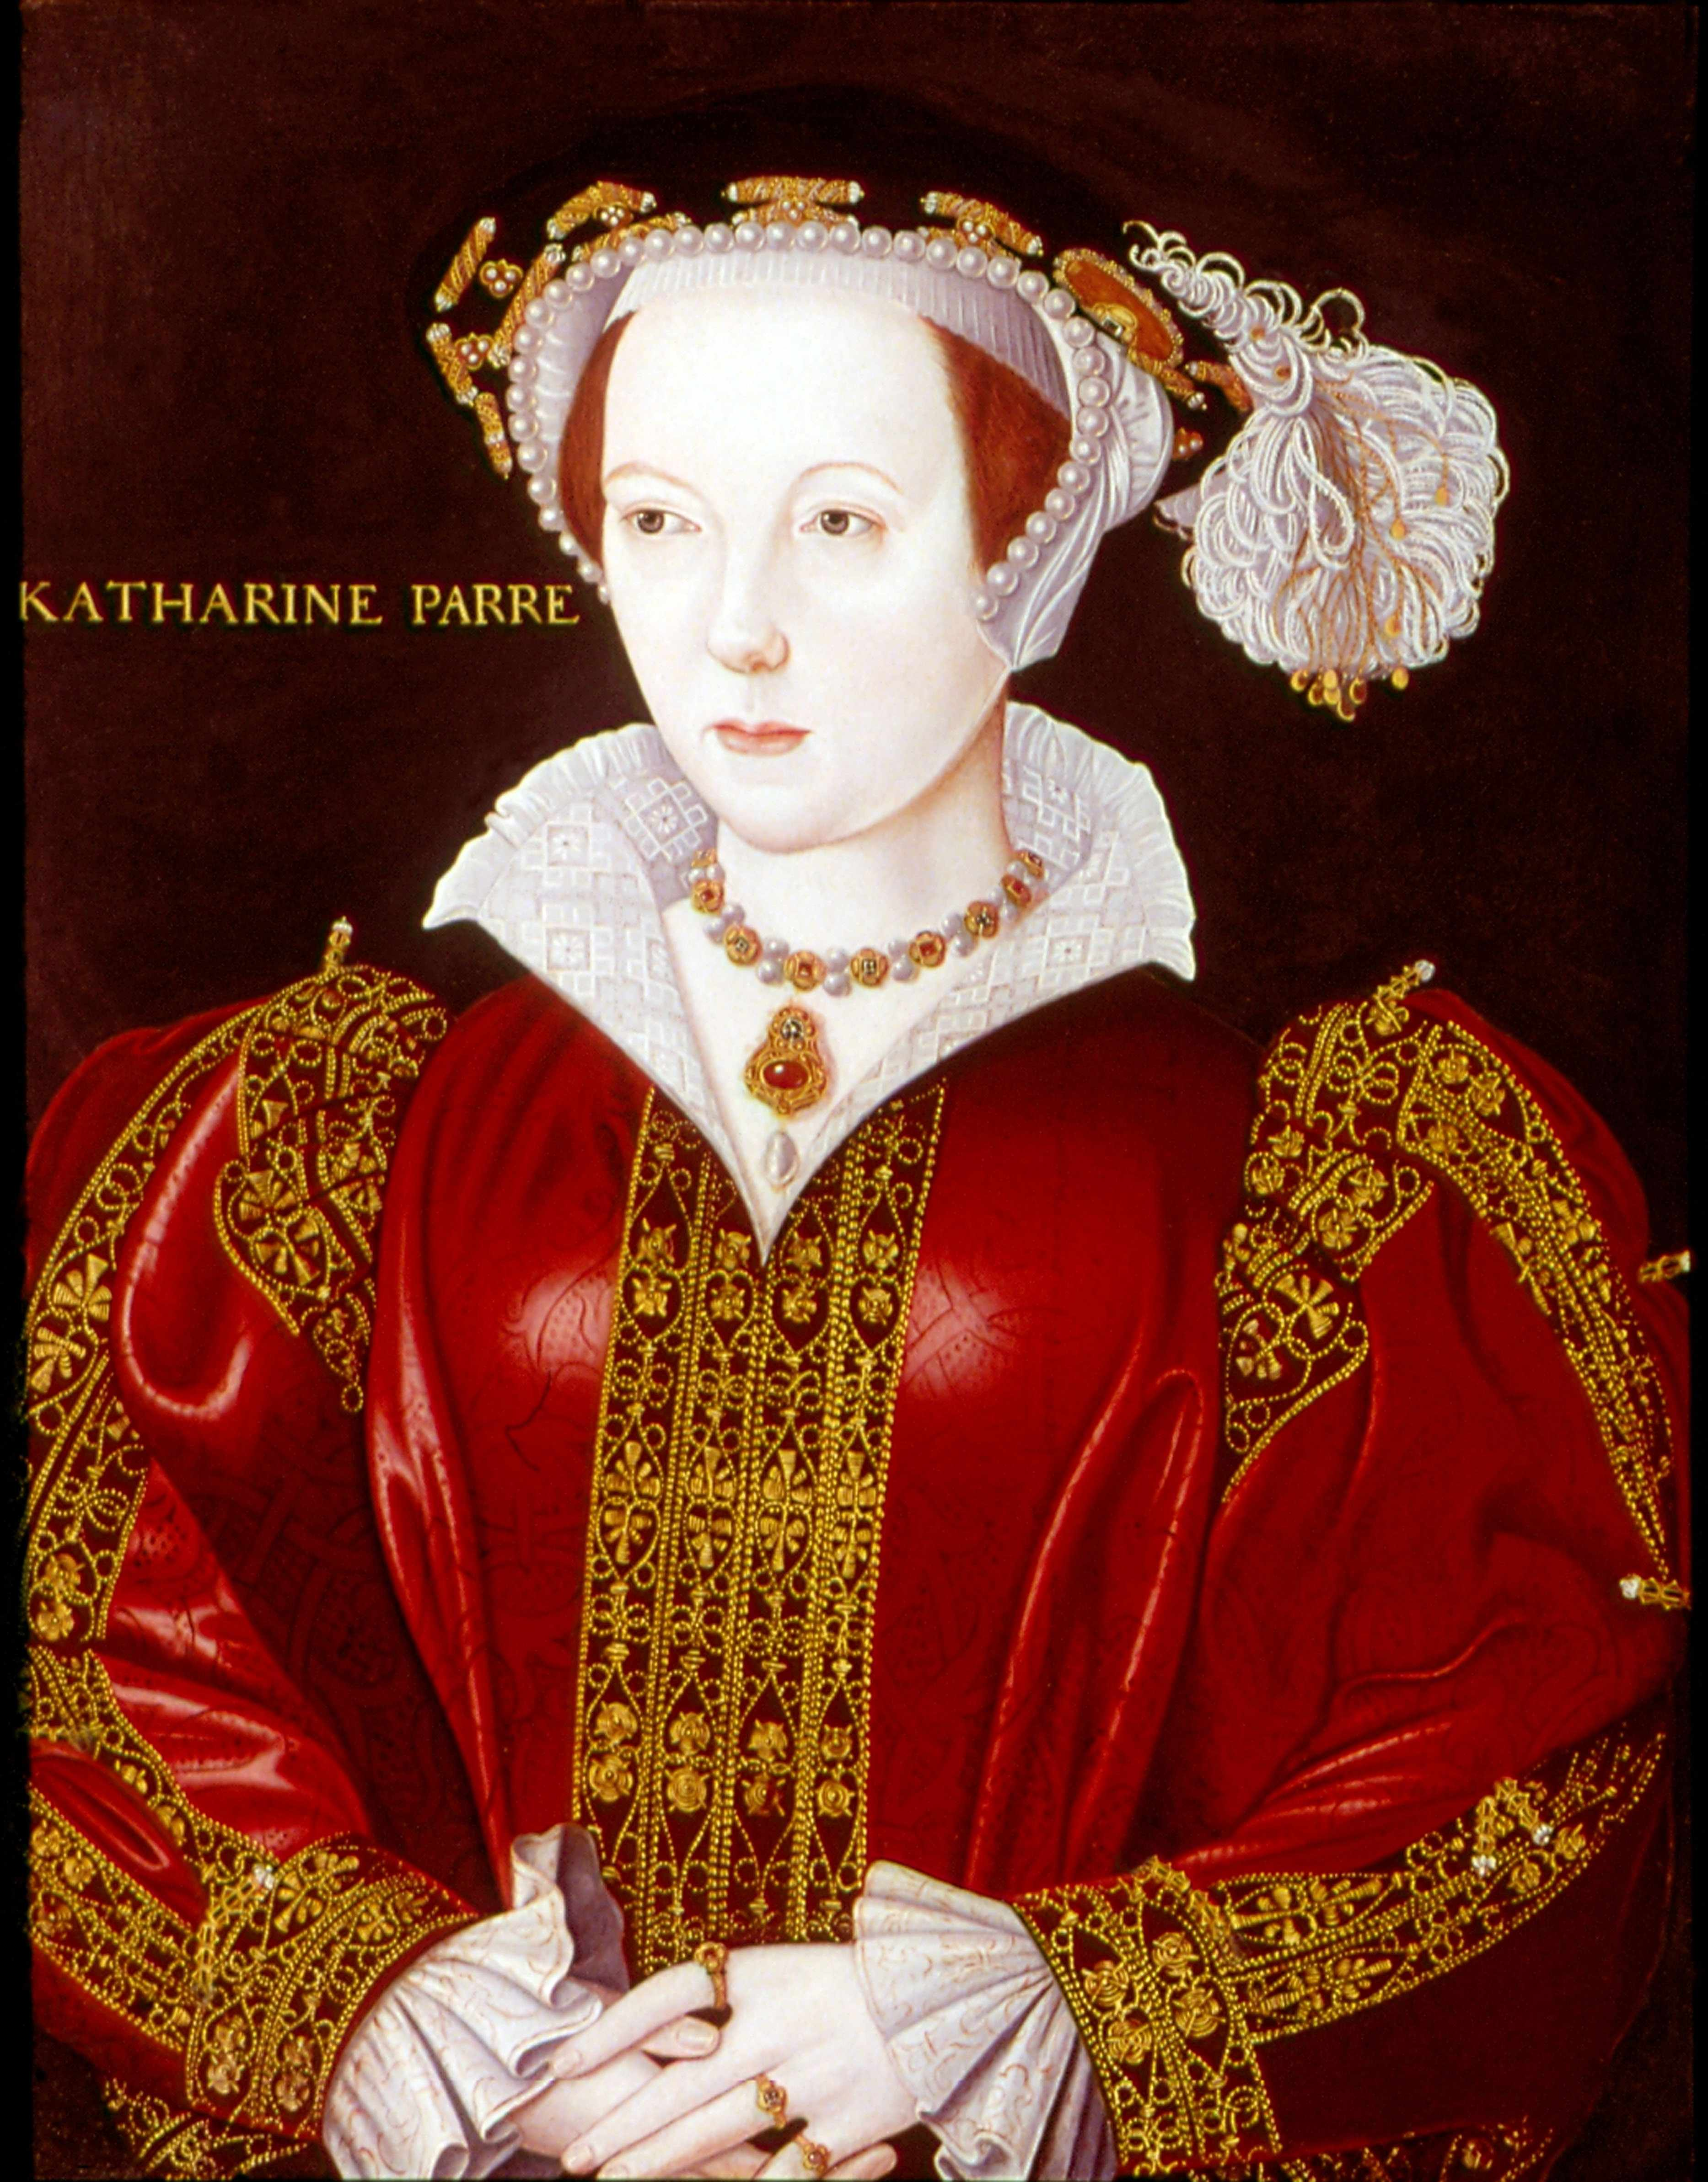 Katherine Parr. (Photo by Universal History Archive/Getty Images)